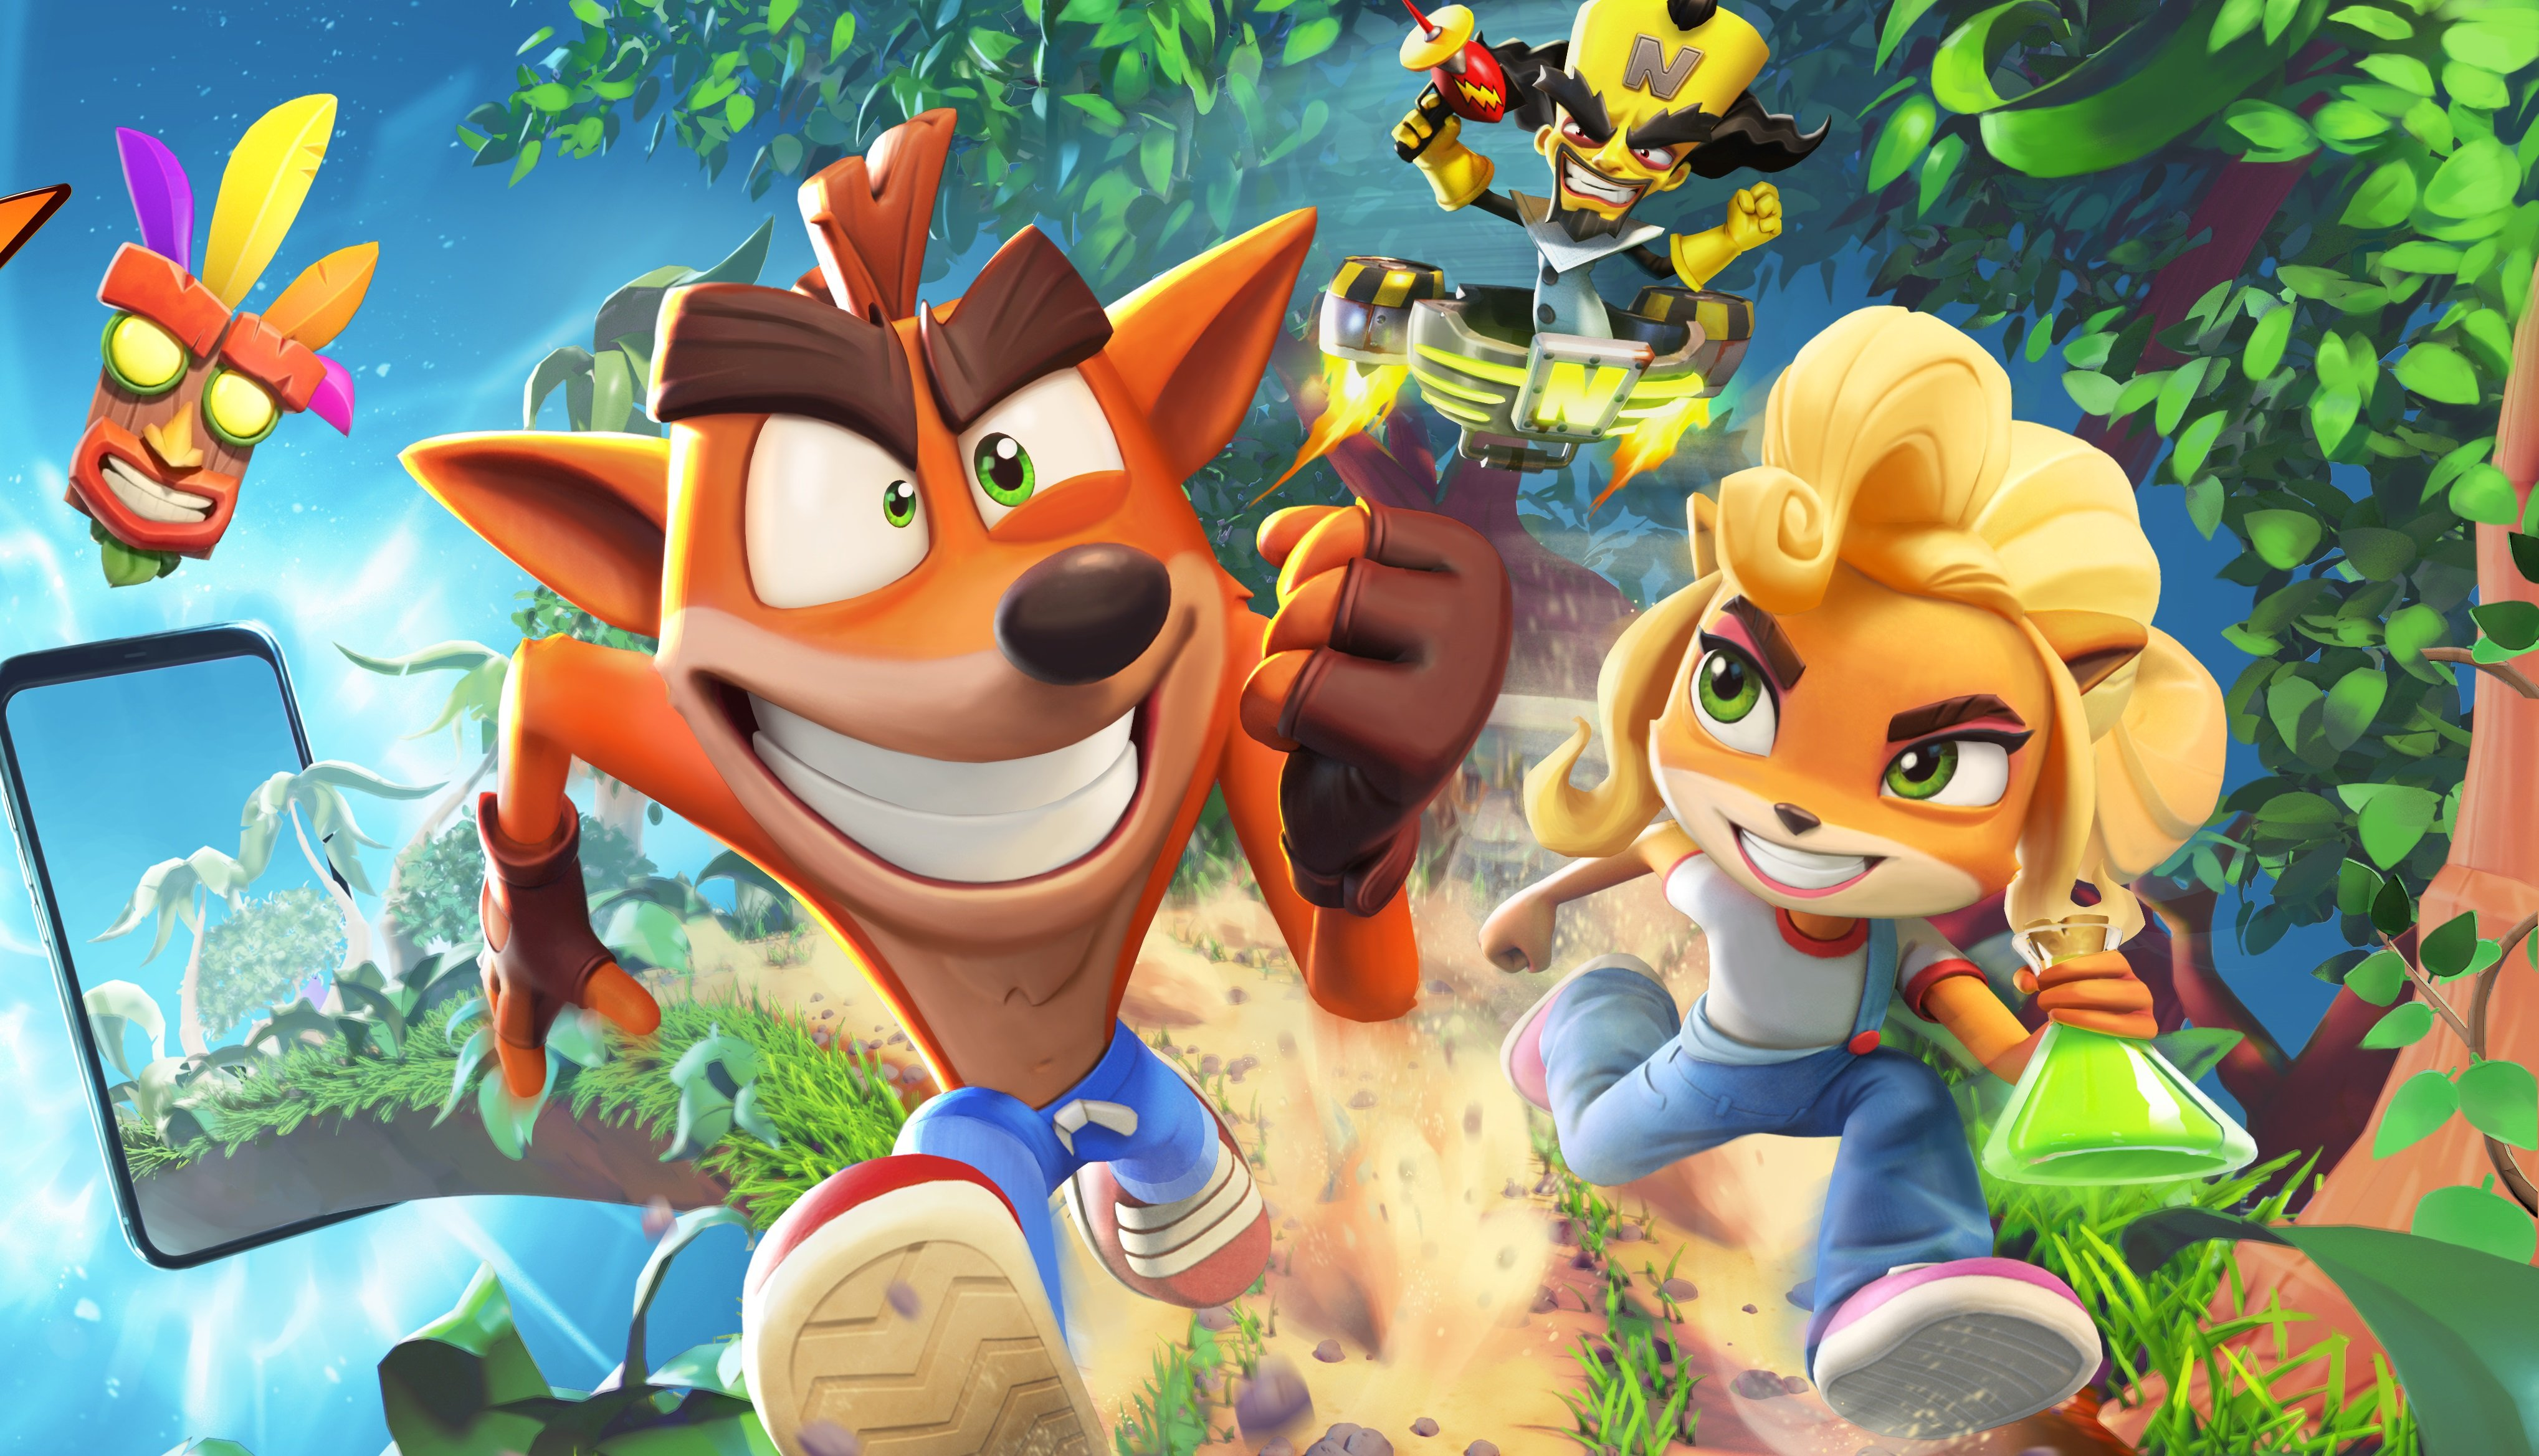 Crash Bandicoot is getting another game this year...a mobile game screenshot